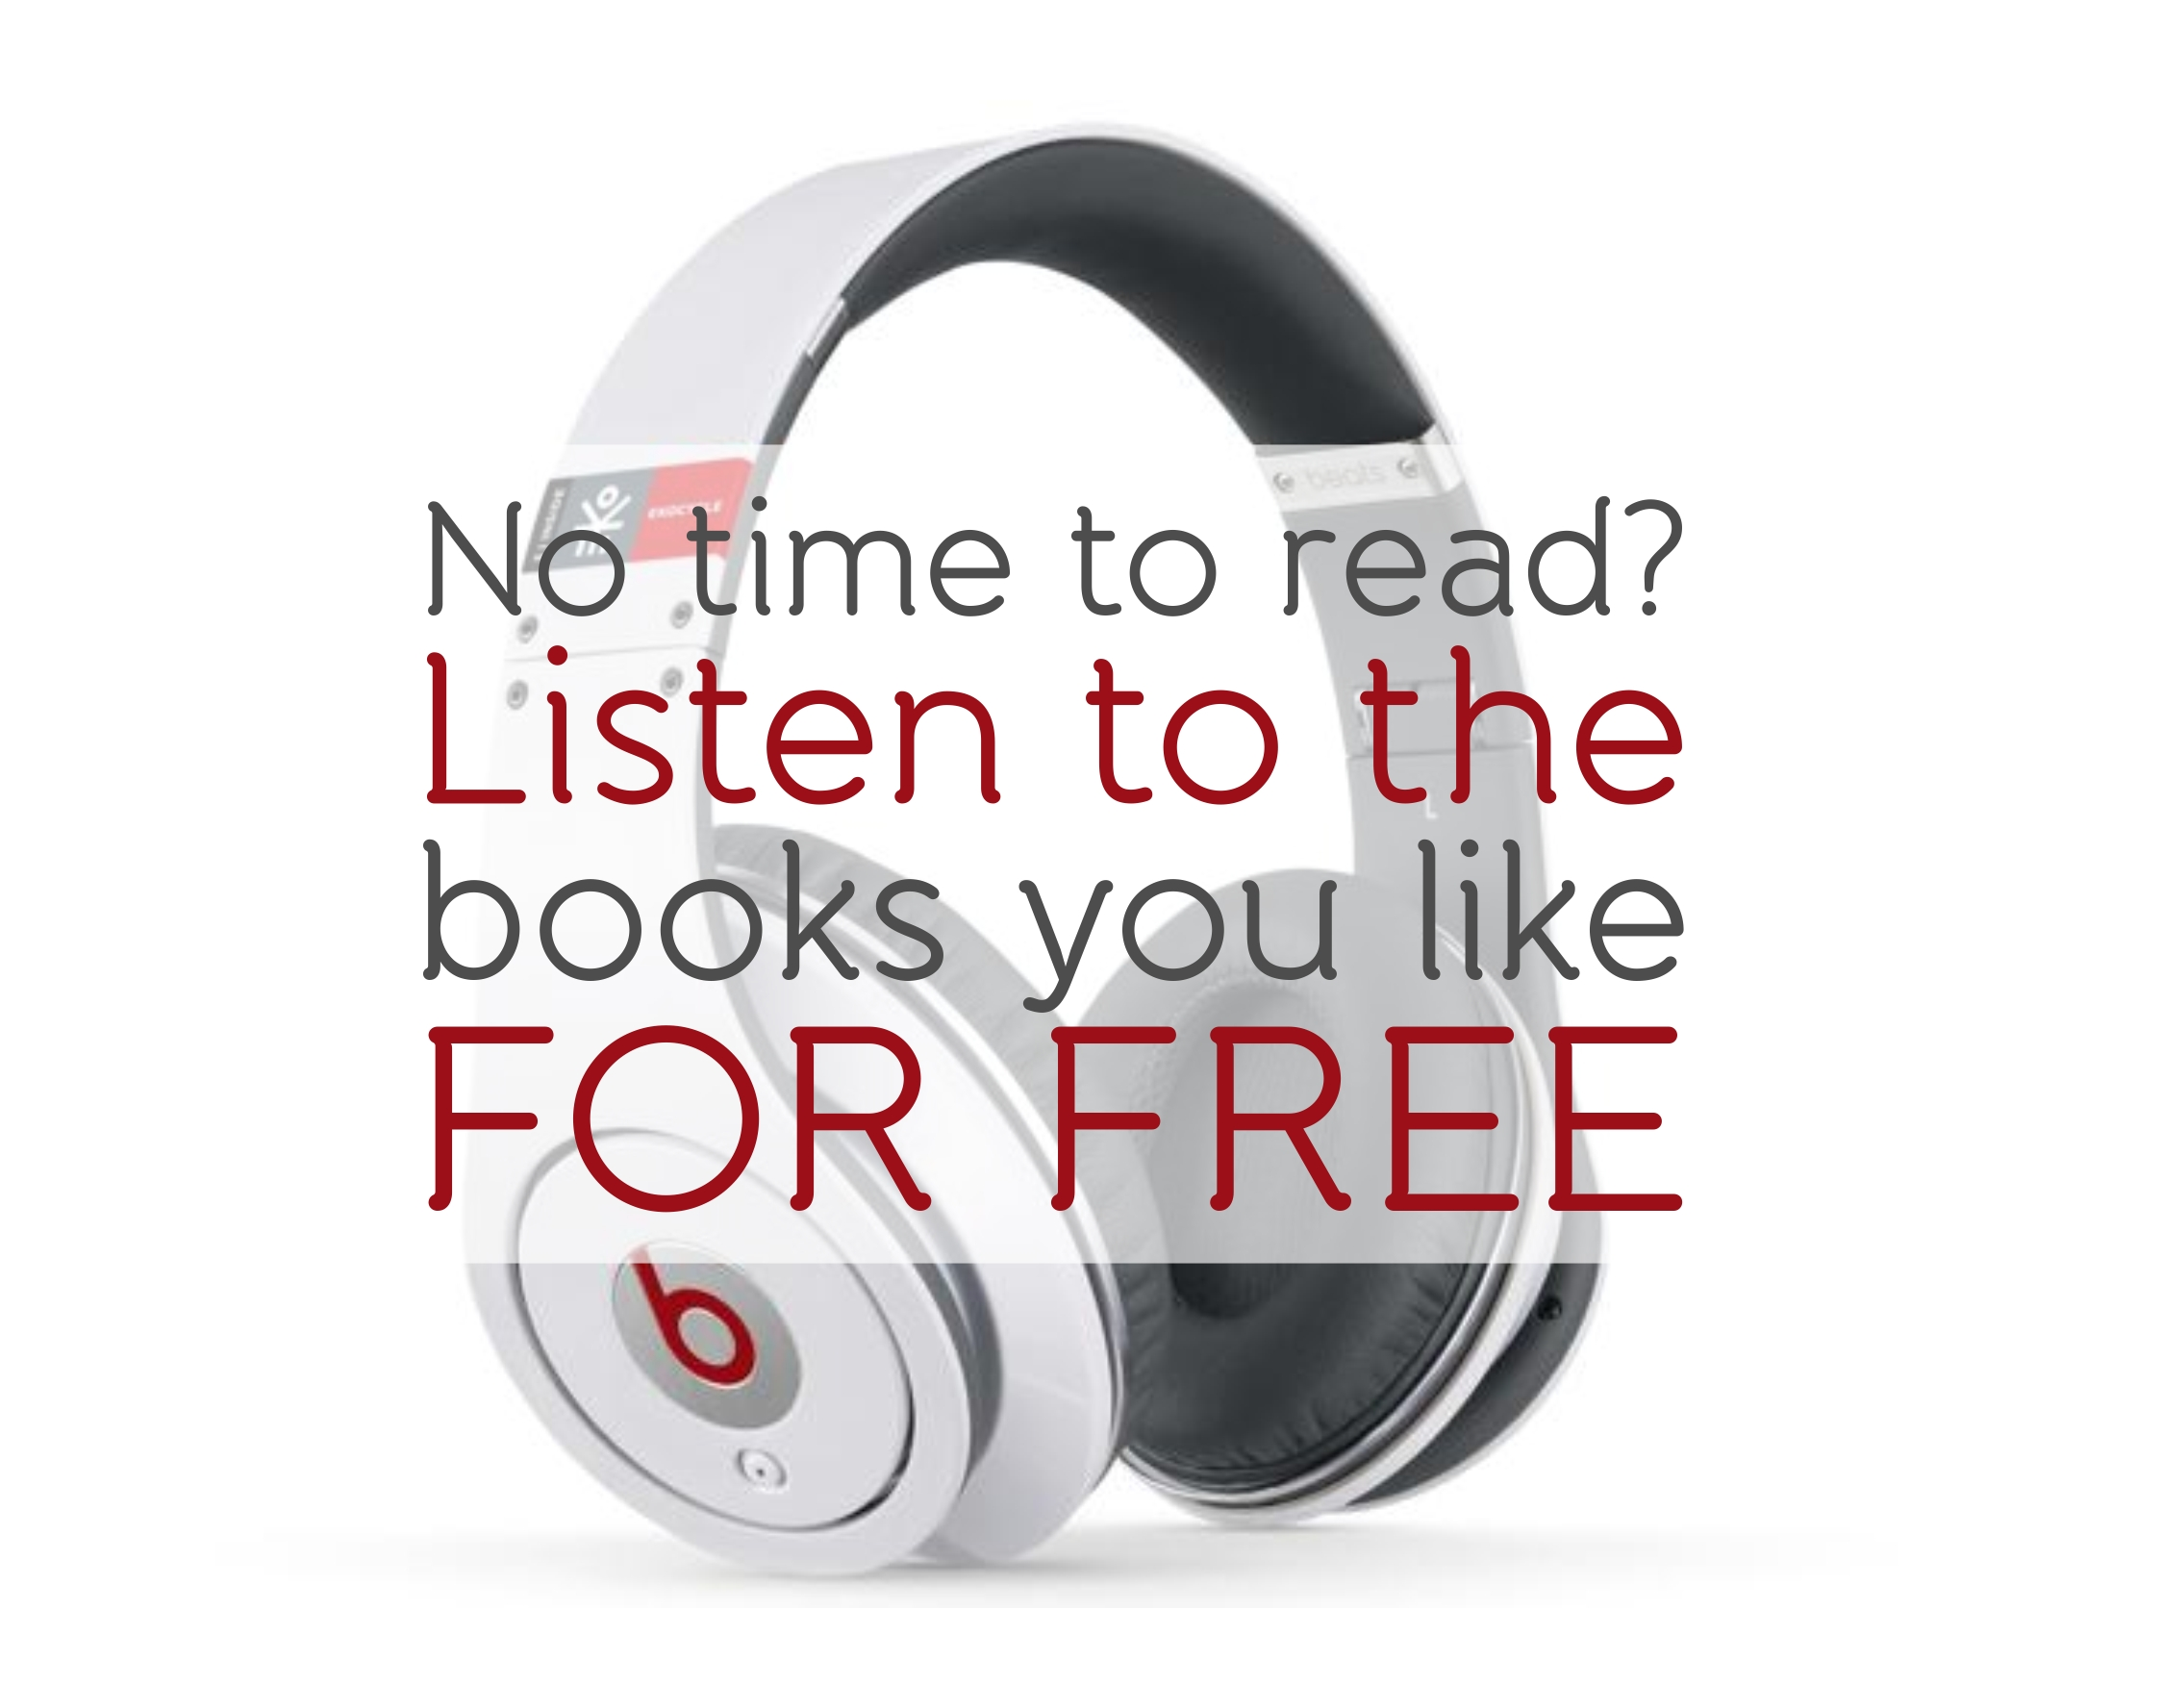 20 book sites audio books download free - Descriptive Words For Resume